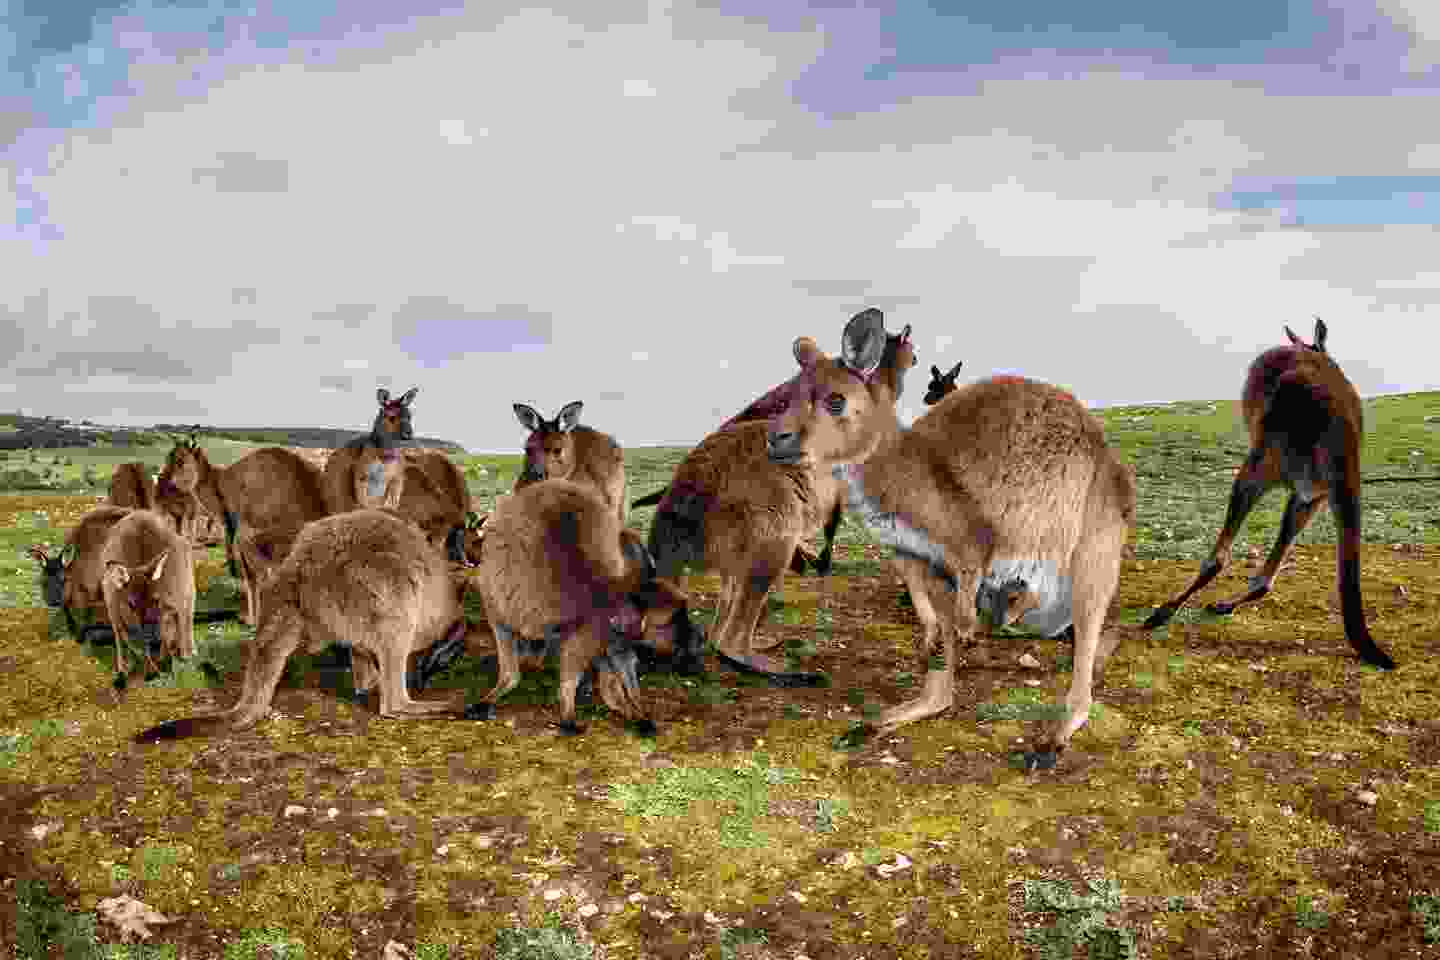 Kangaroos spot the camera on Kangaroo Island, Australia (Shutterstock)